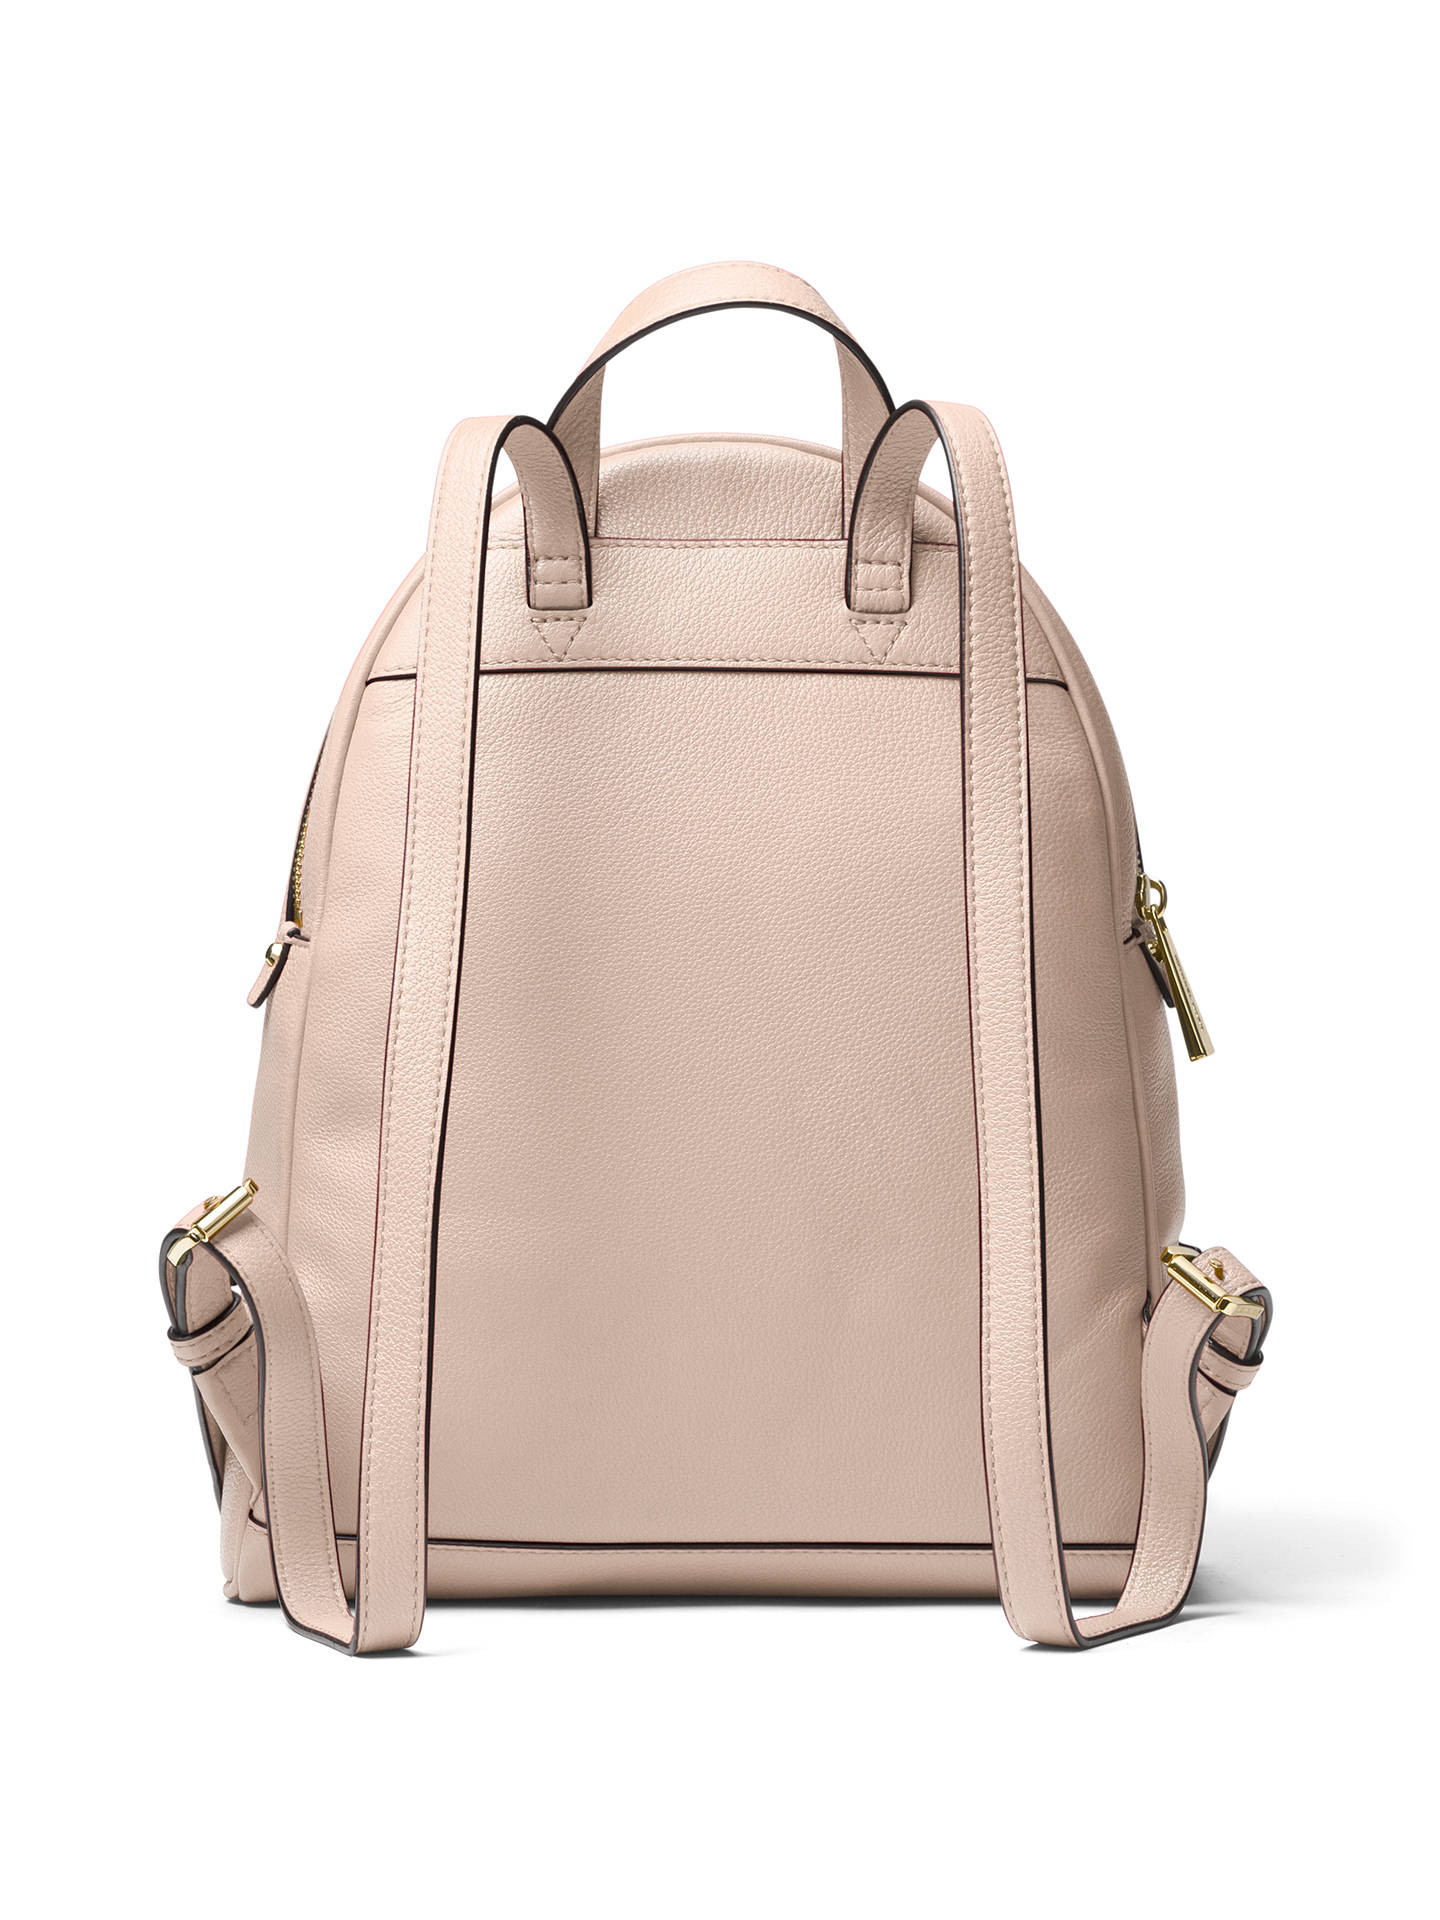 BuyMICHAEL Michael Kors Rhea Leather Backpack, Soft Pink Online at johnlewis.com